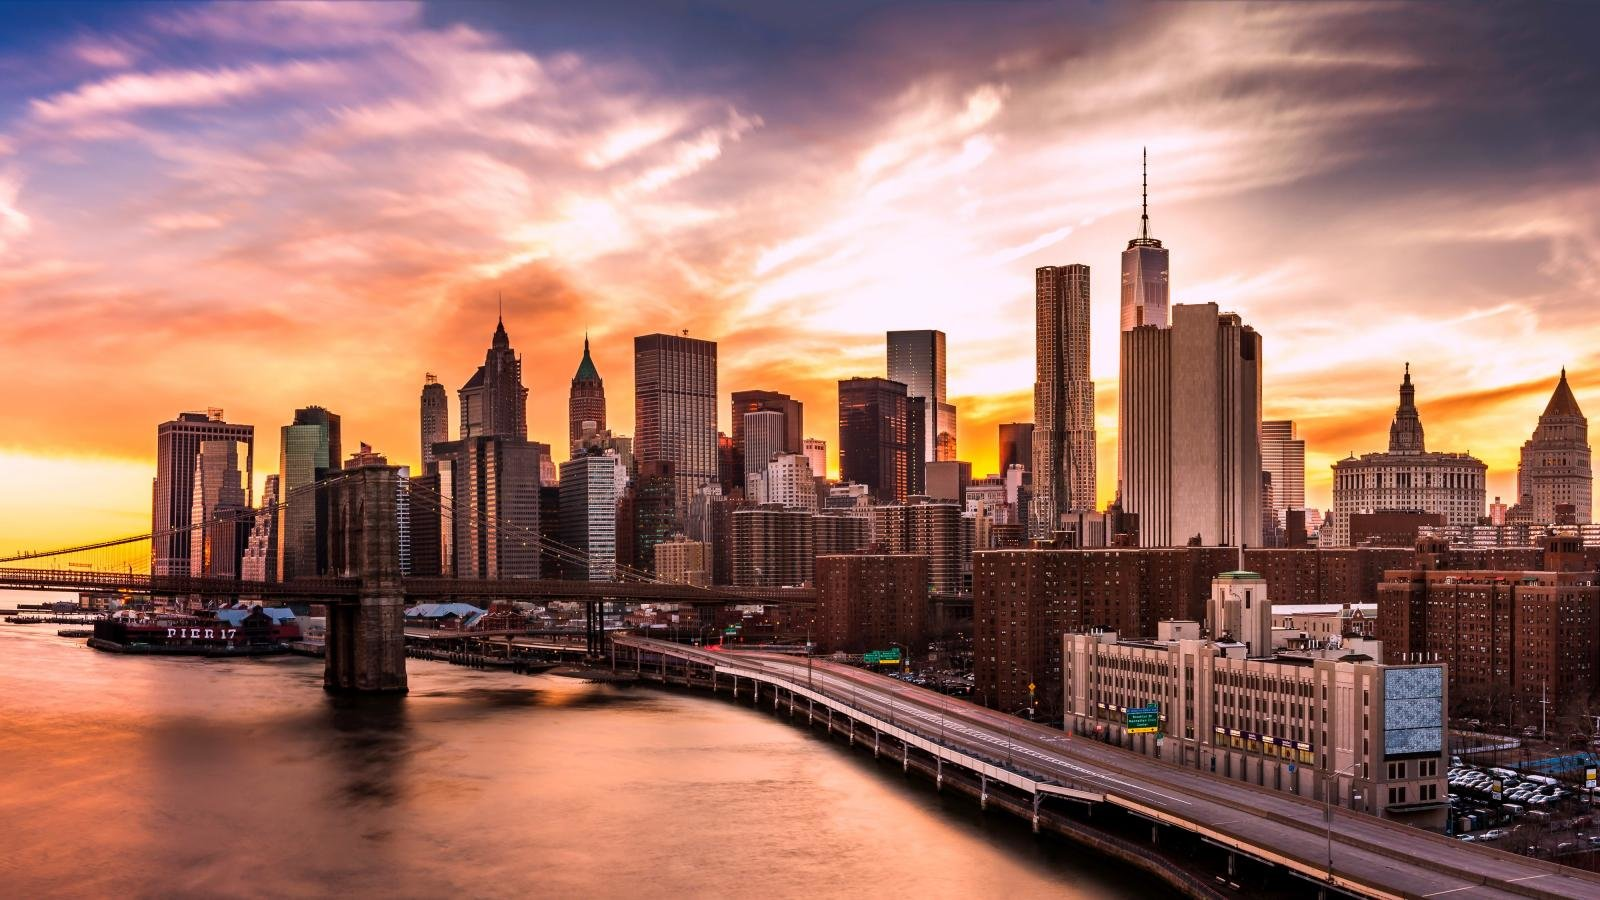 Awesome New York Free Background Id 486053 For Hd 1600x900 Desktop